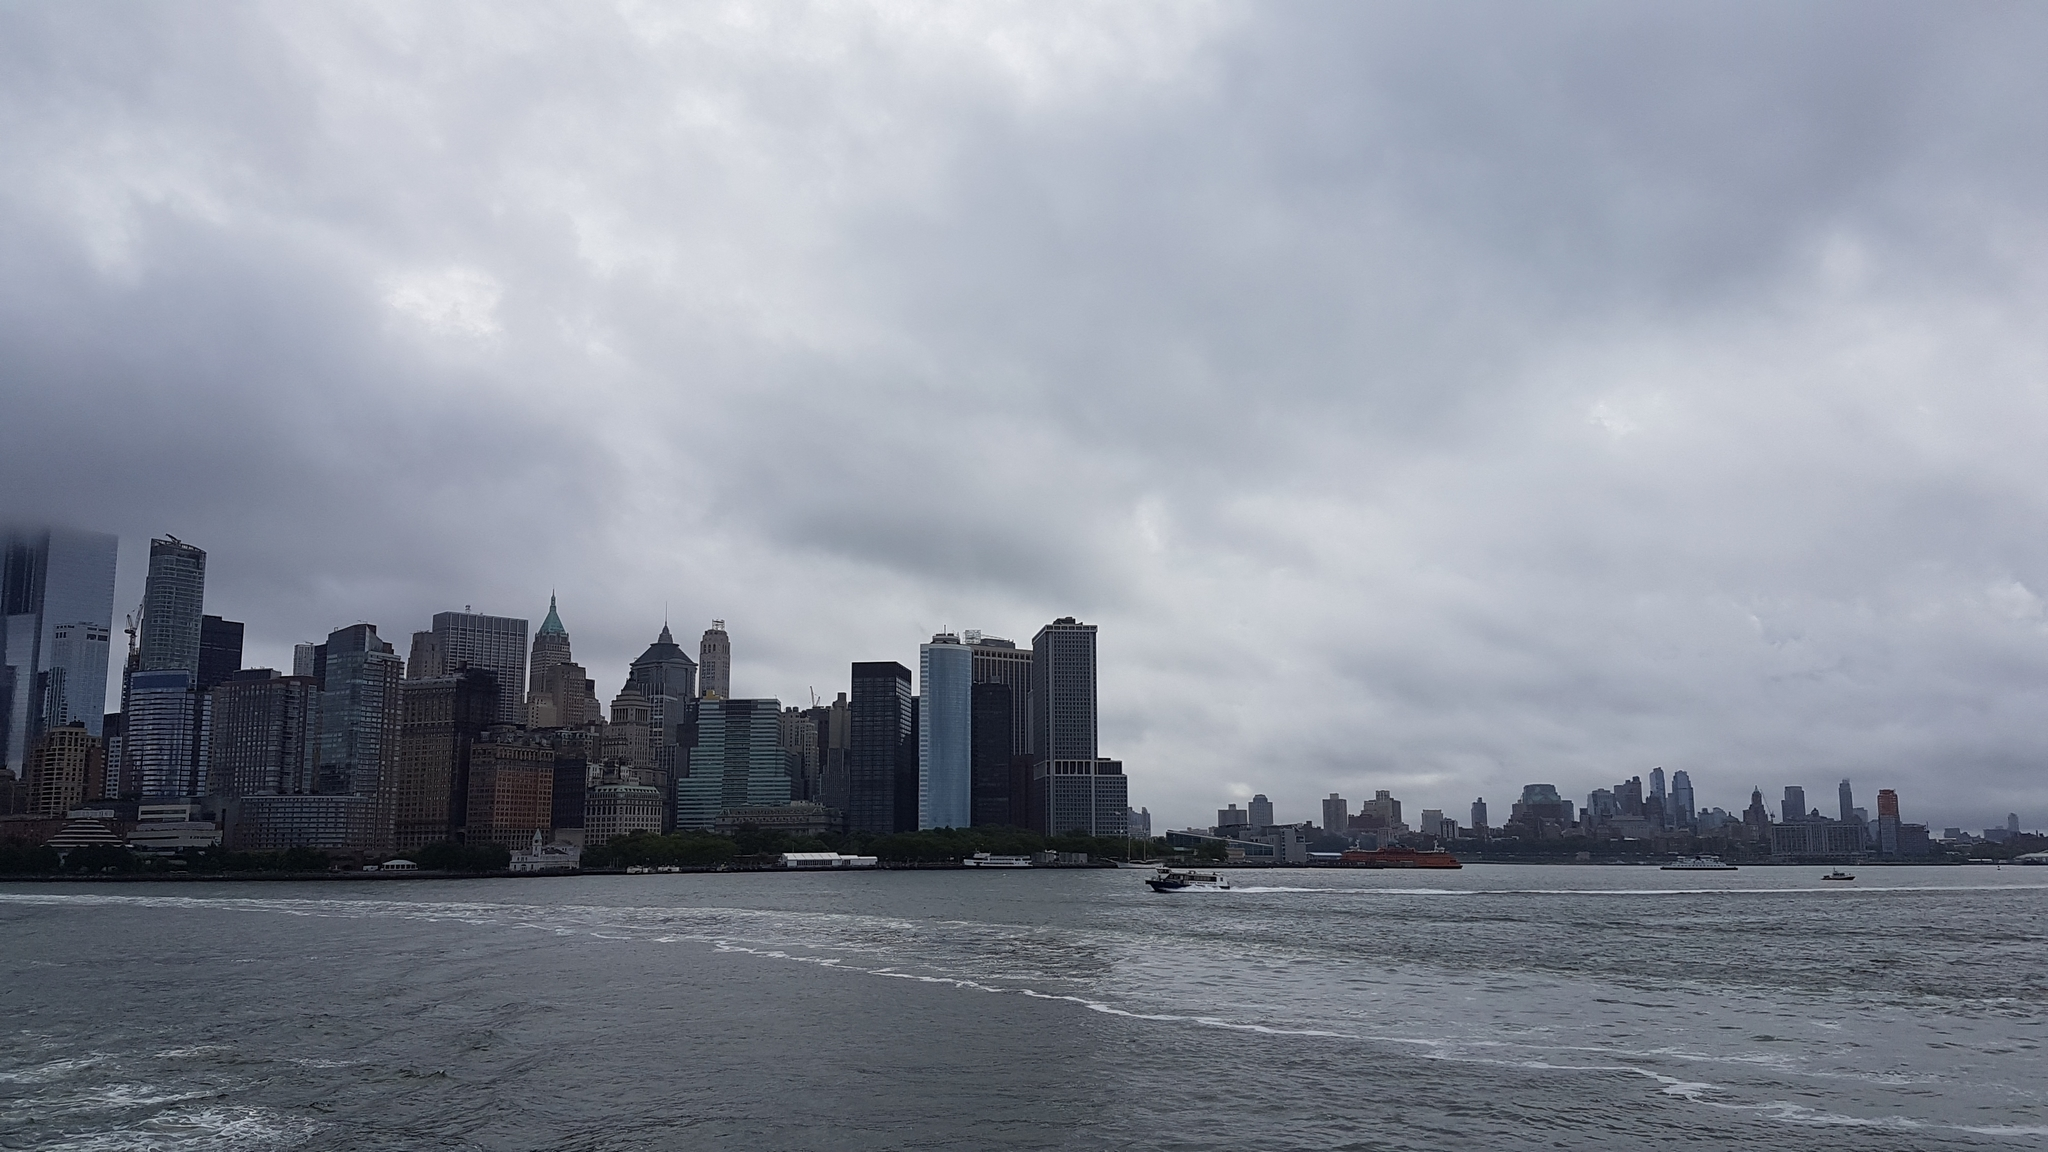 Statue-of-Liberty-002